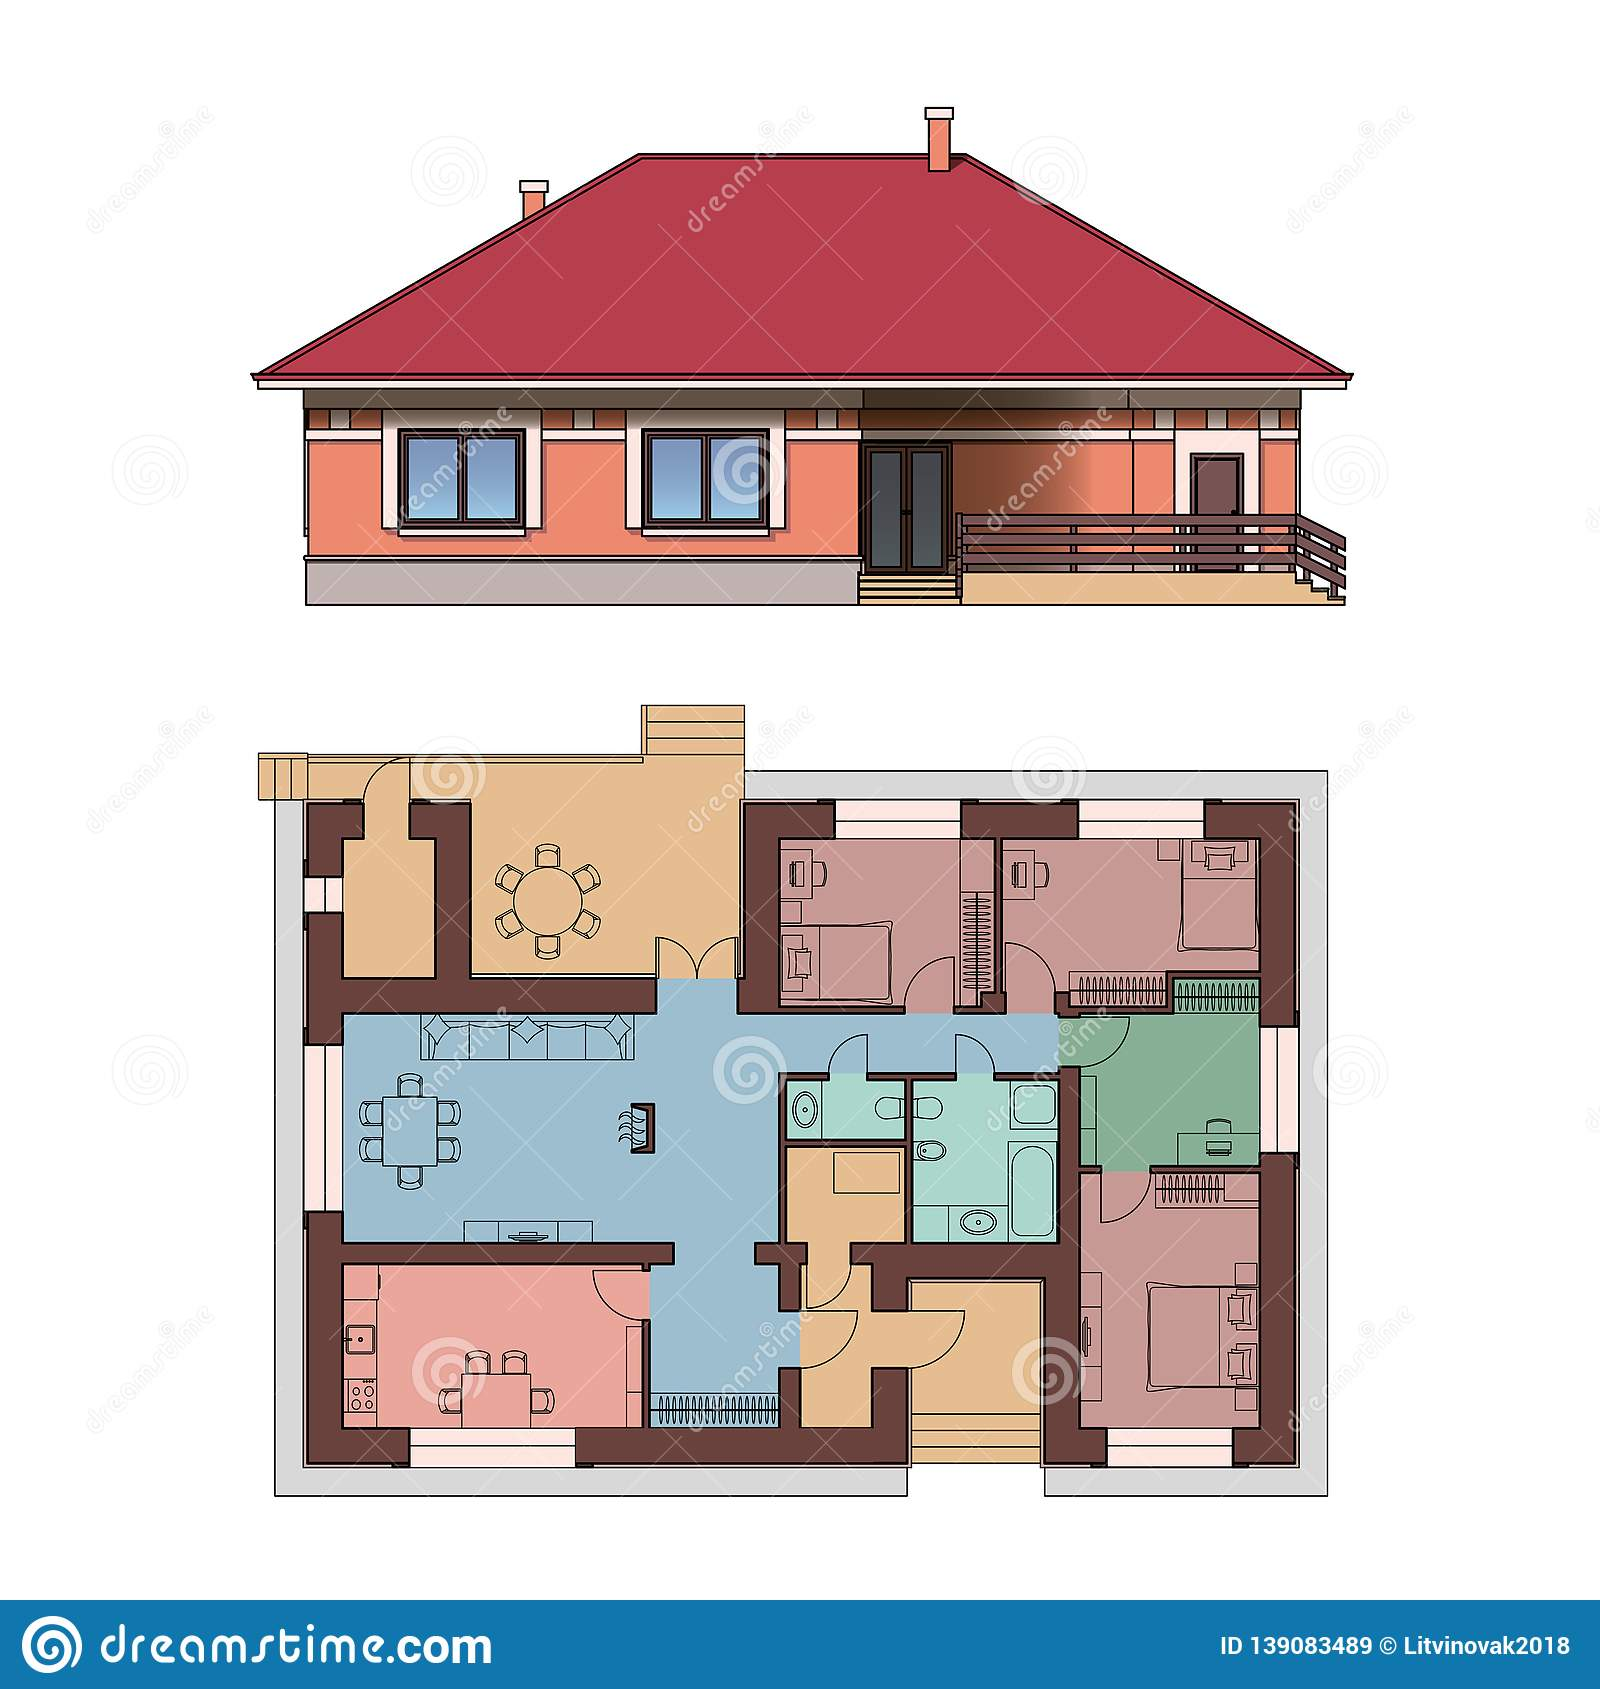 Architectural Facade And Plan Of A House Views Of Single Storey Cottage Vector Realistic Illustration Stock Illustration Illustration Of Estate Housing 139083489